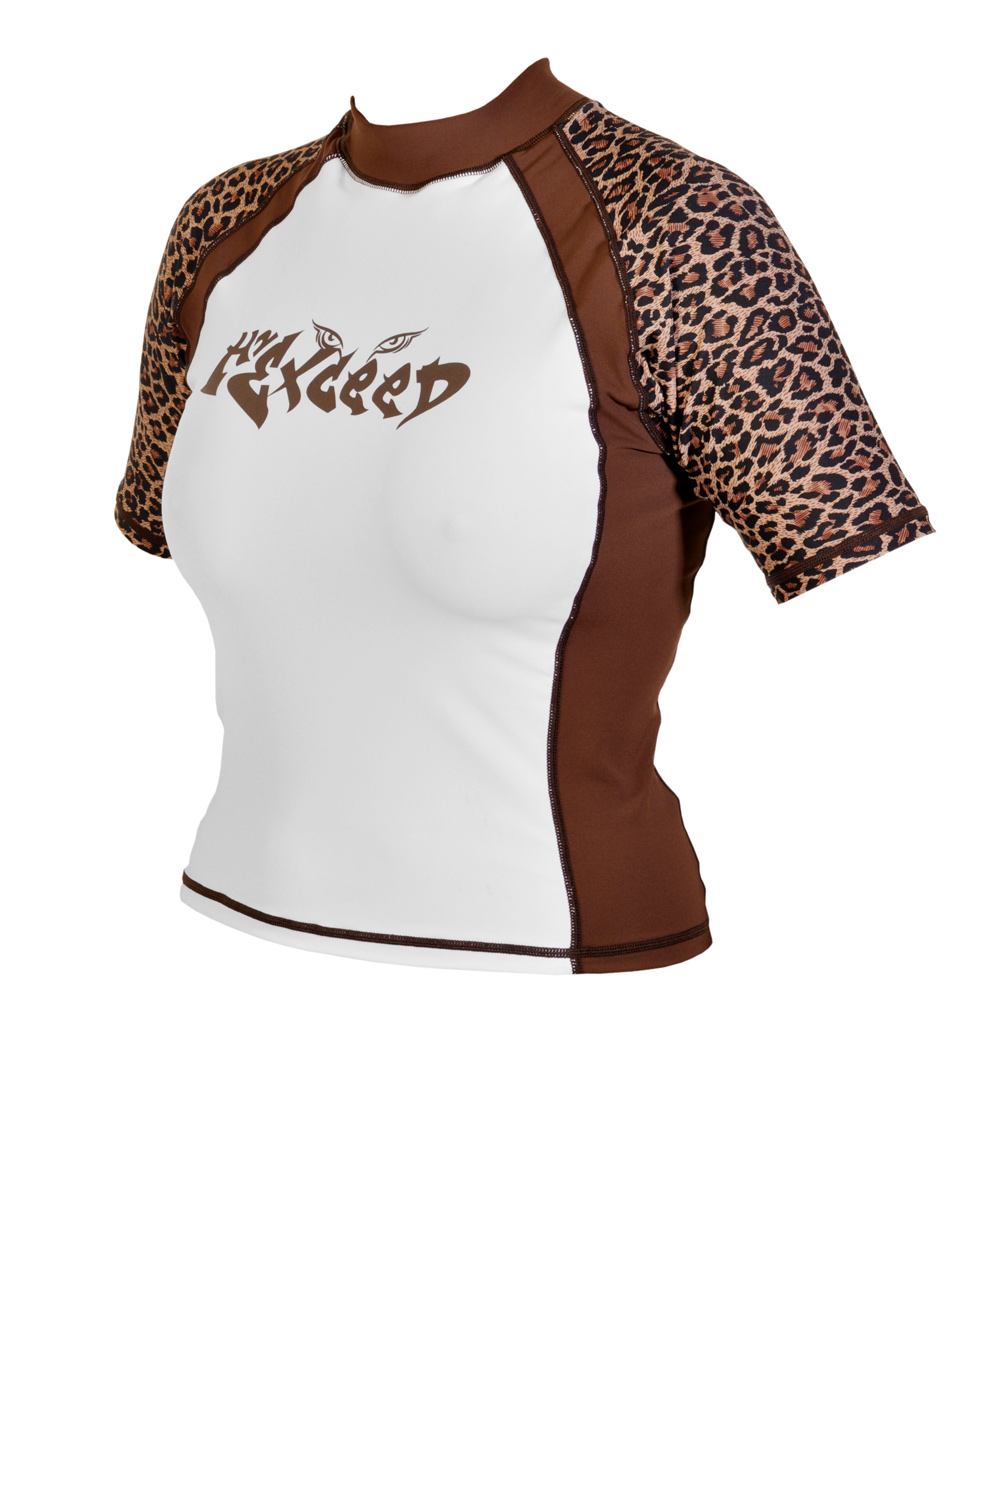 Exceed Enrage S/S Womens Short Sleeve Rash Guard